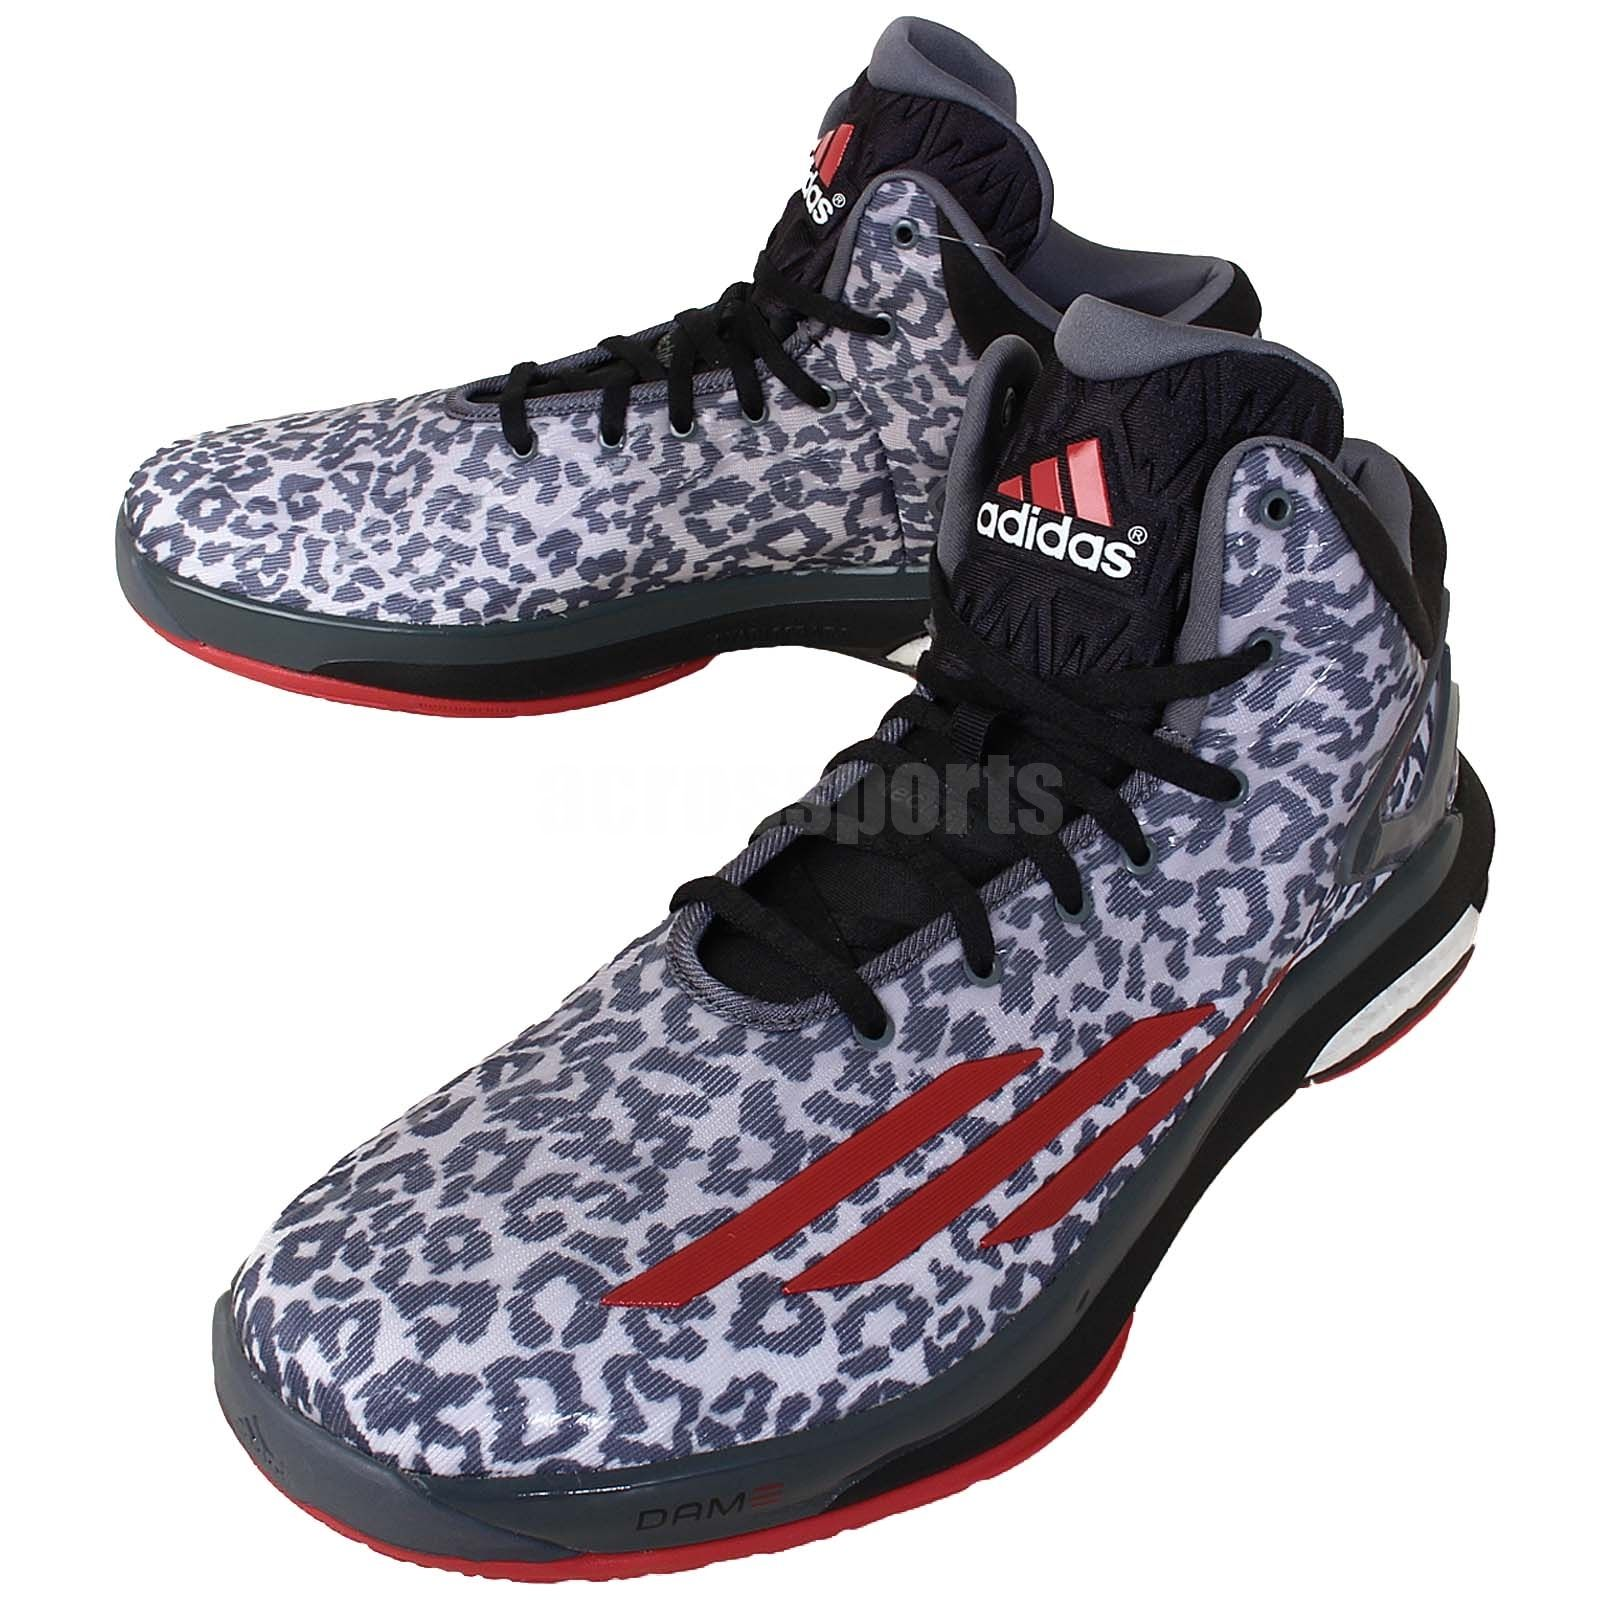 adidas basketball shoes damian lillard. adidas basketball shoes damian lillard